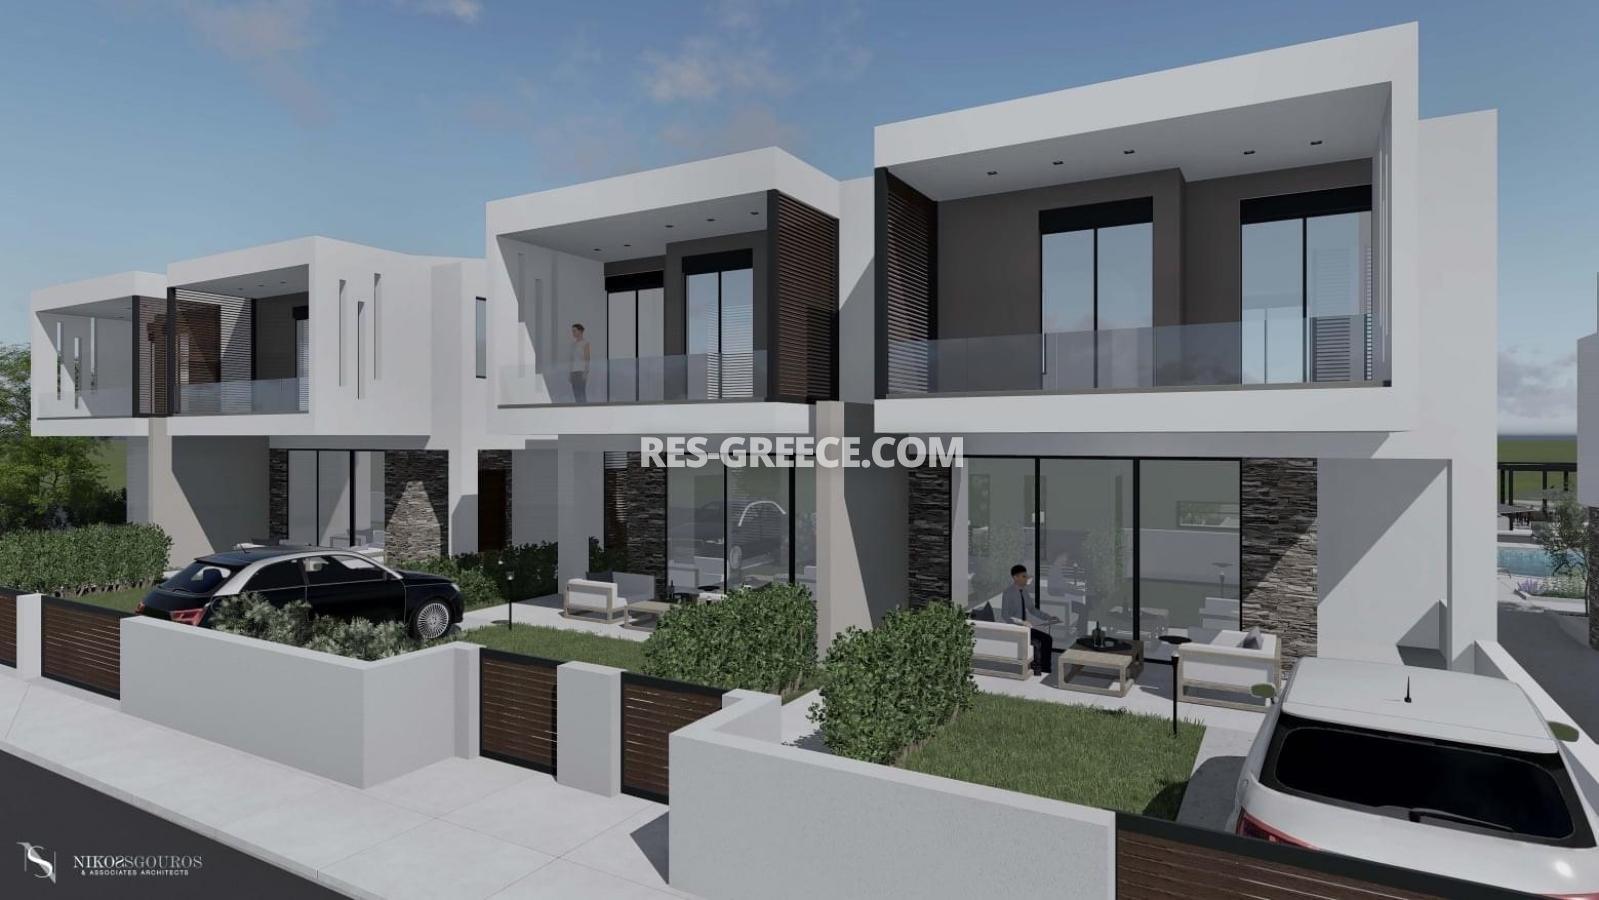 Anasa apartments, Halkidiki-Sithonia, Greece - apartments in a new complex with pool - Photo 2